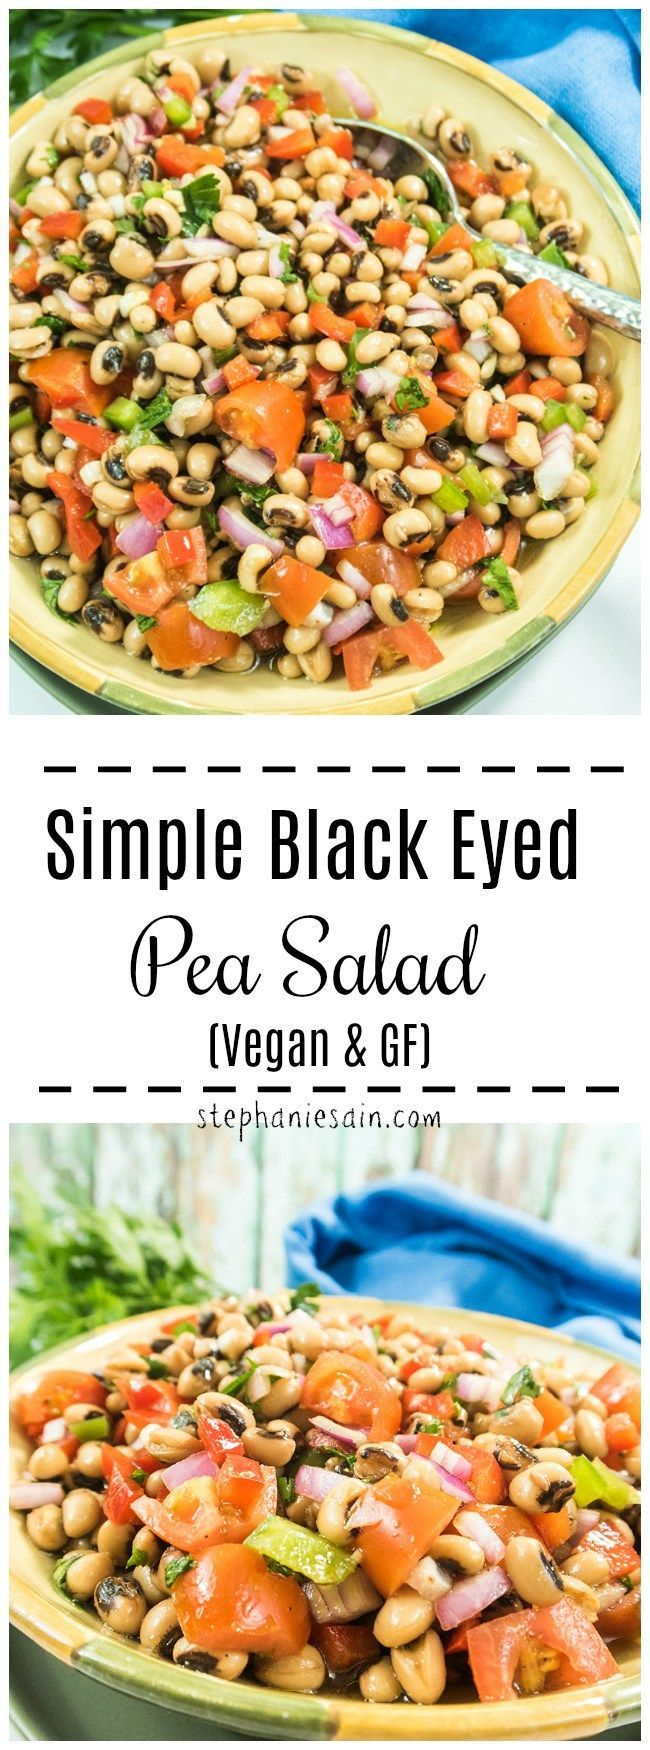 this simple black eyed pea salad is loaded with lots of